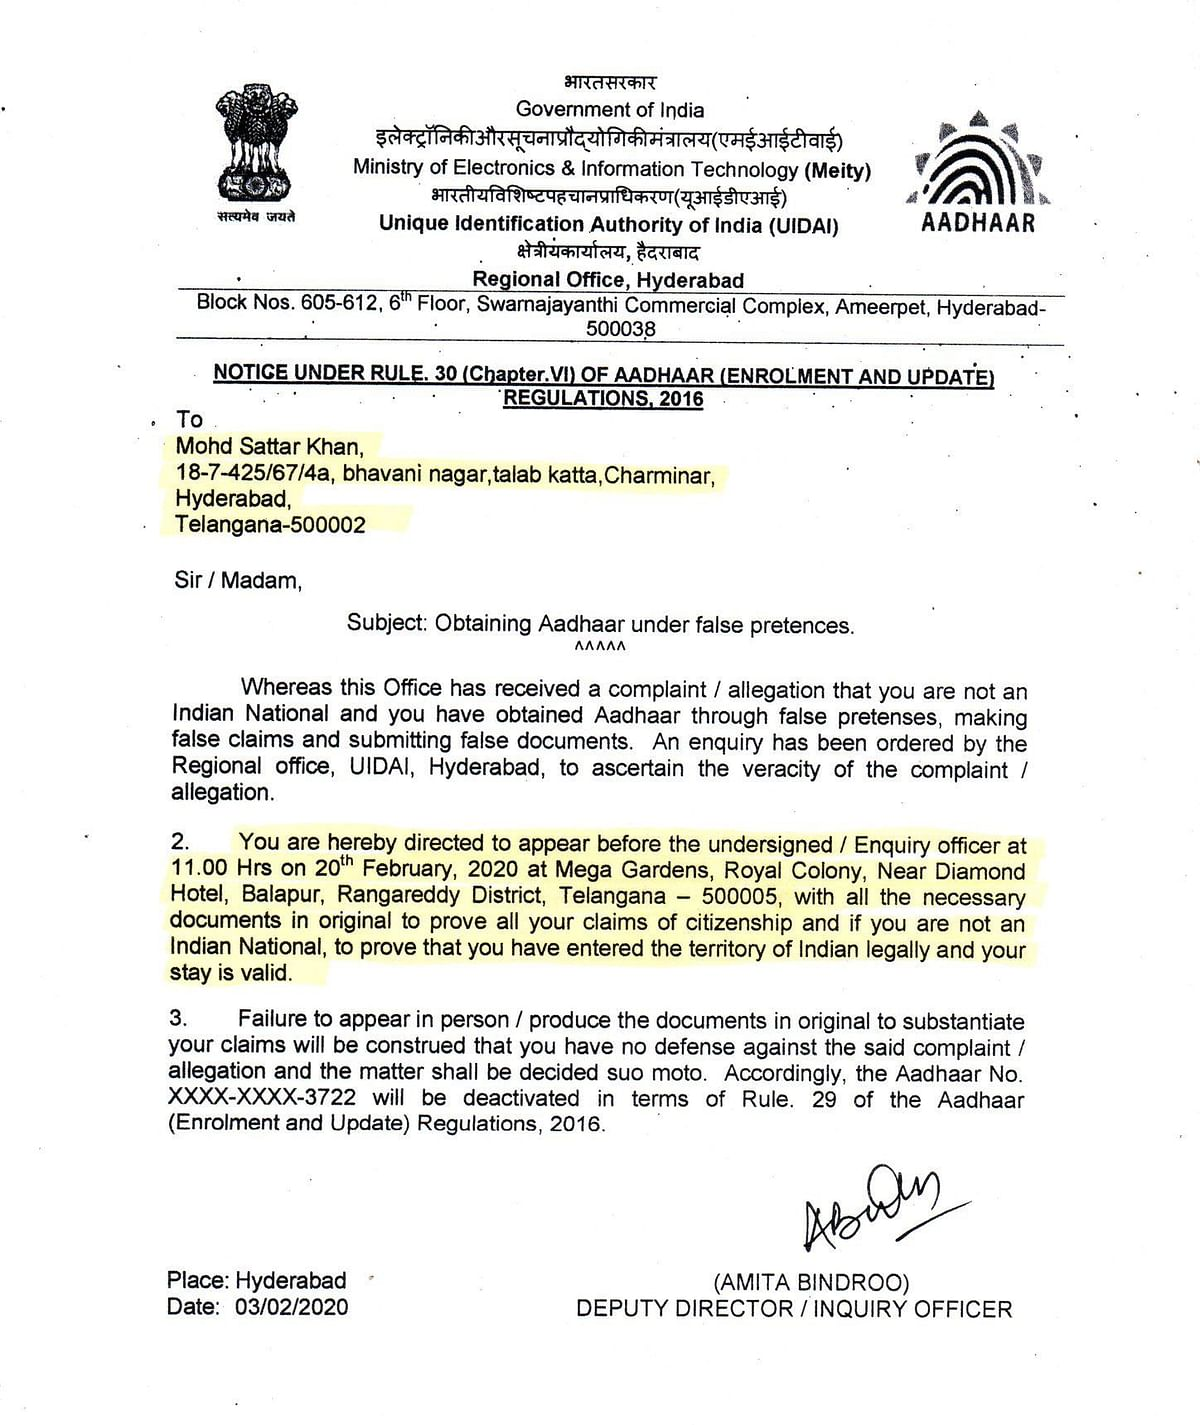 A letter issued by the UIDAI on 3 February directing Mohd Sattar Khan to produce documents to prove his citizenship.